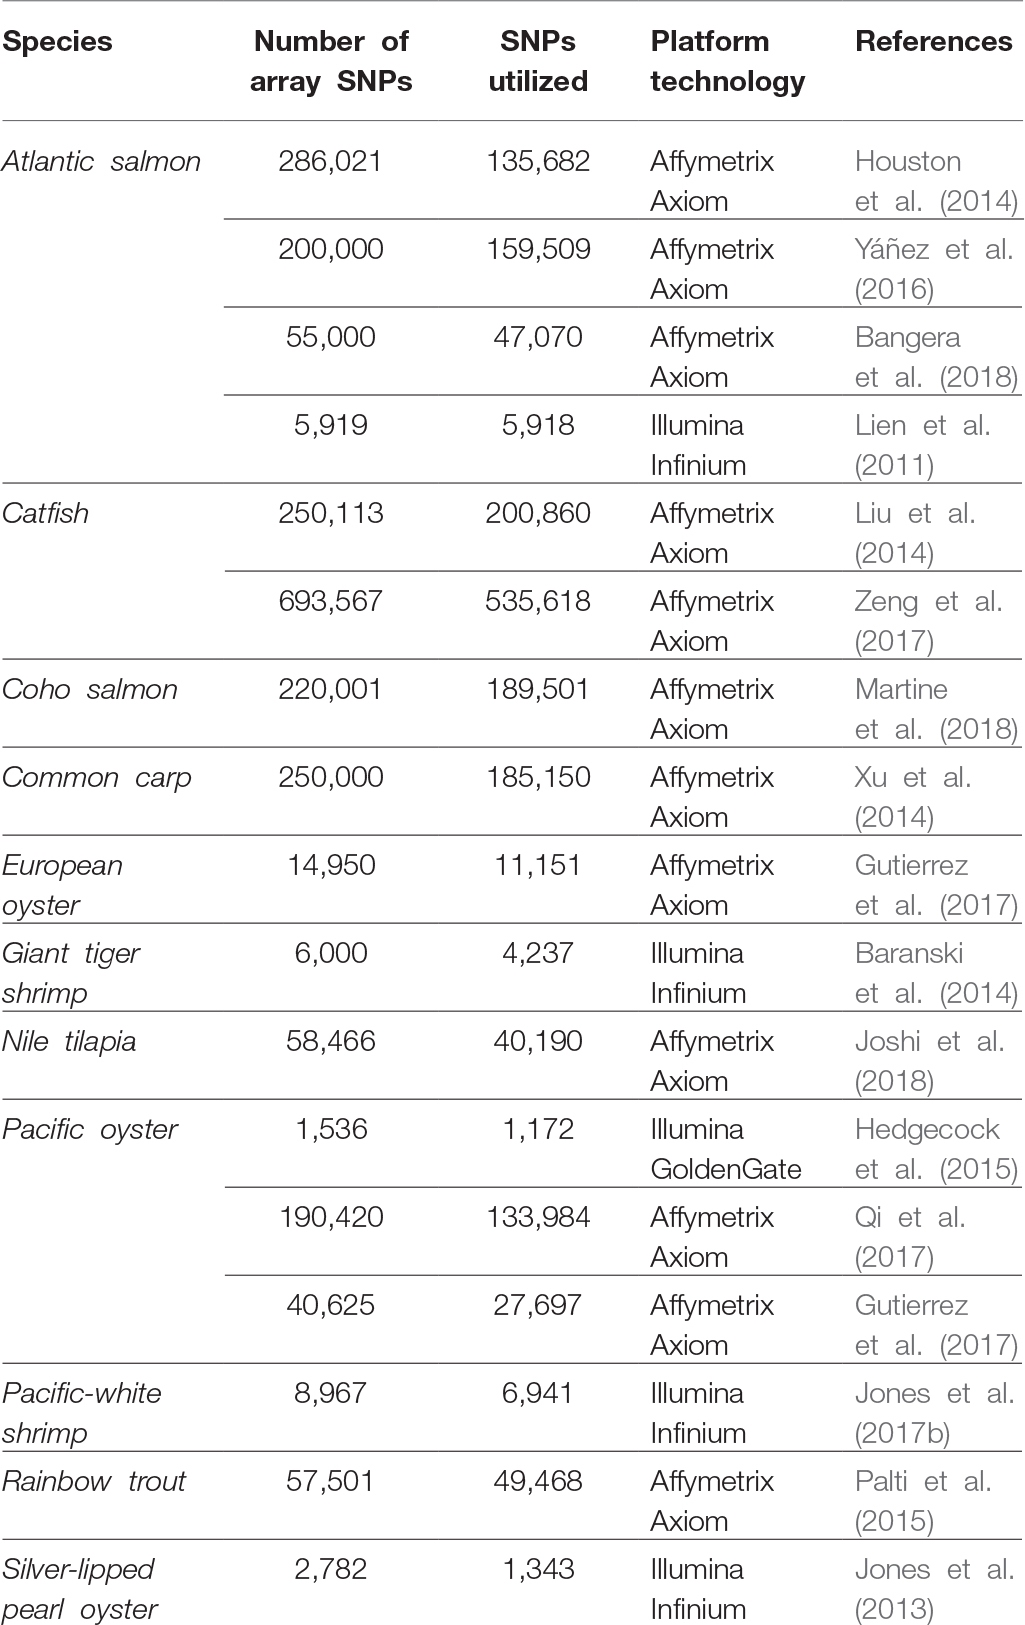 Frontiers | Genomic Selection in Aquaculture: Application